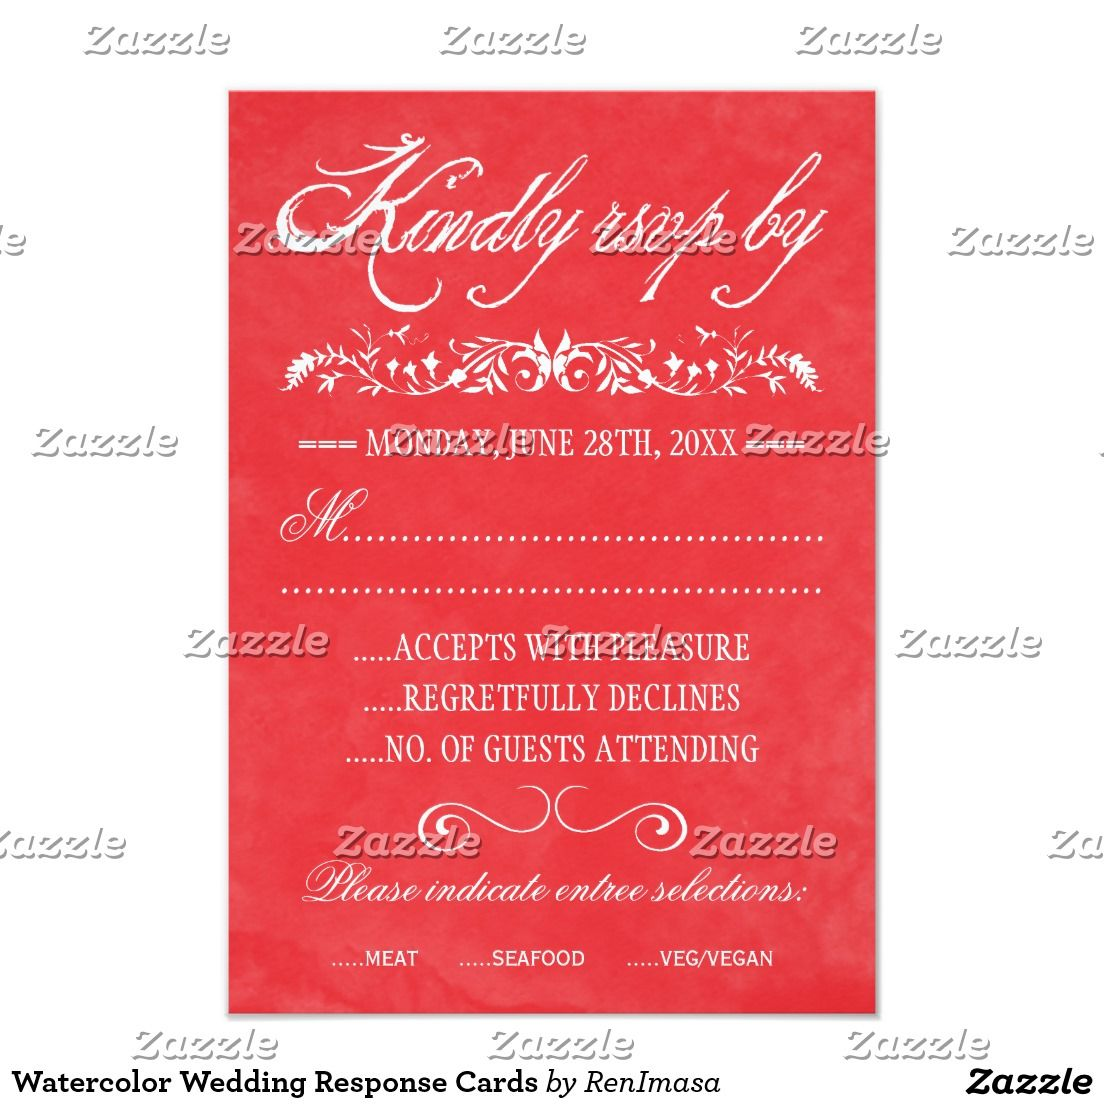 Watercolor Wedding Response Cards | RSVP Wedding Cards | Pinterest ...